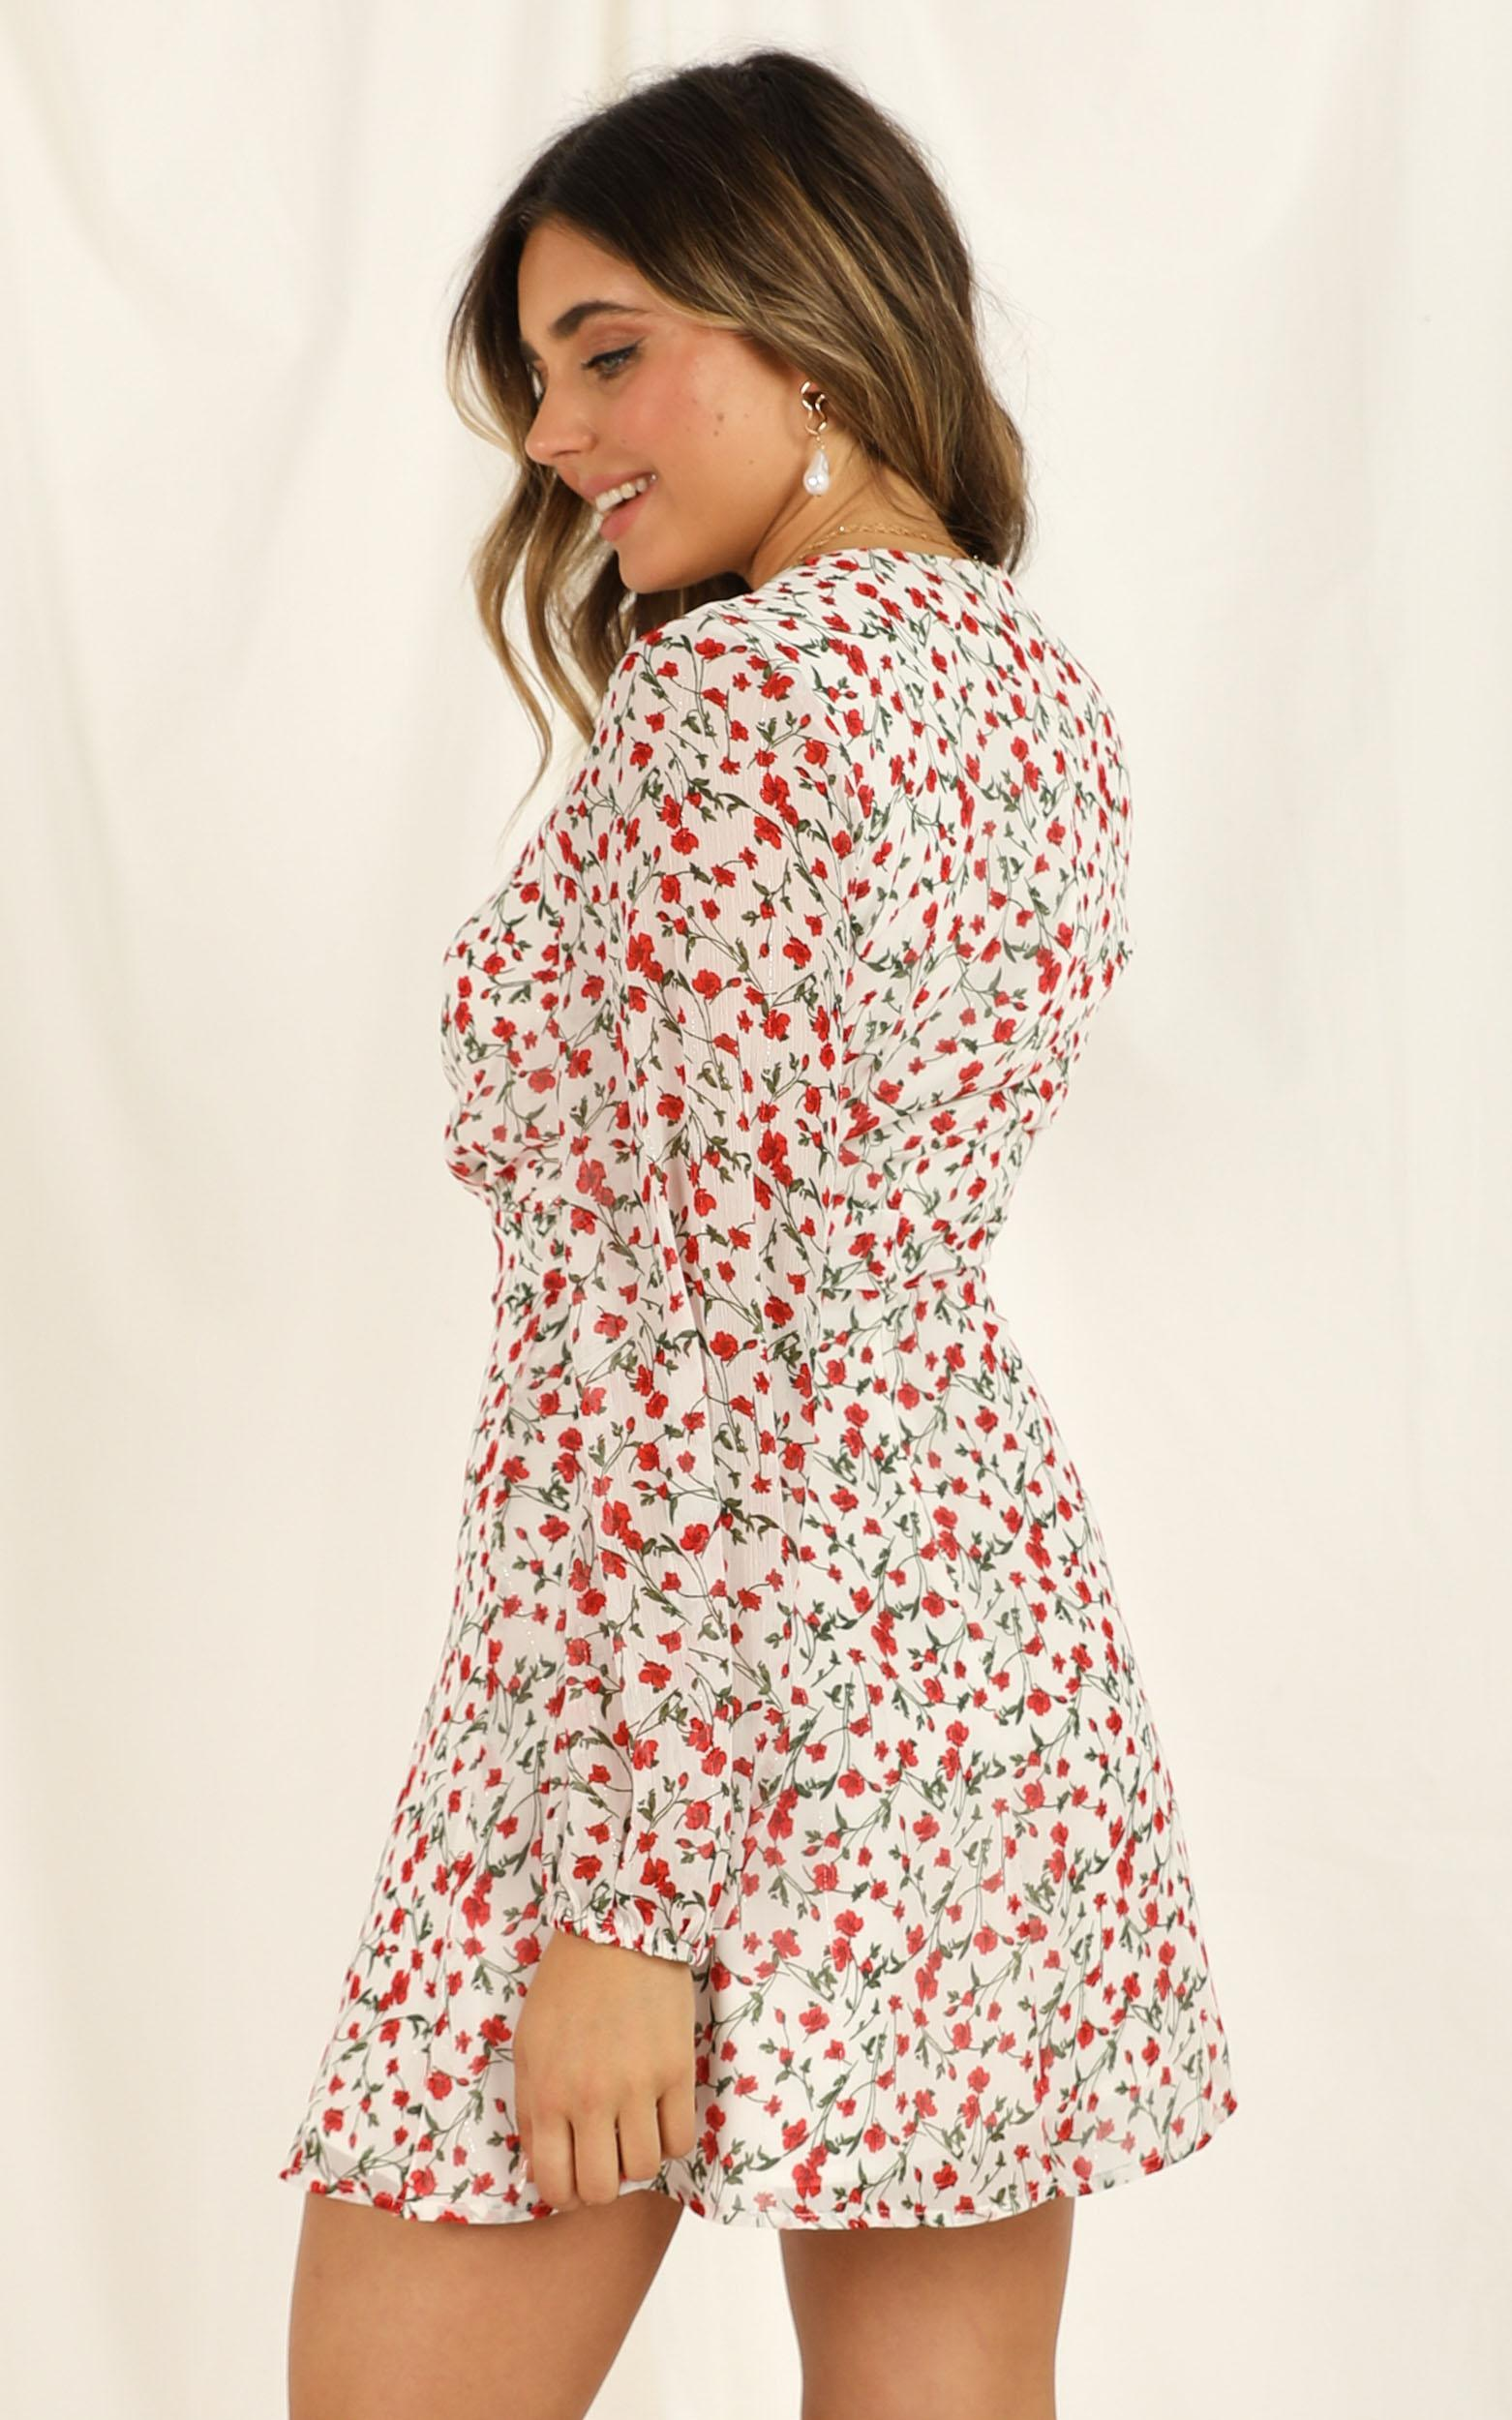 Lace Me Up Dress in white floral - 20 (XXXXL), White, hi-res image number null